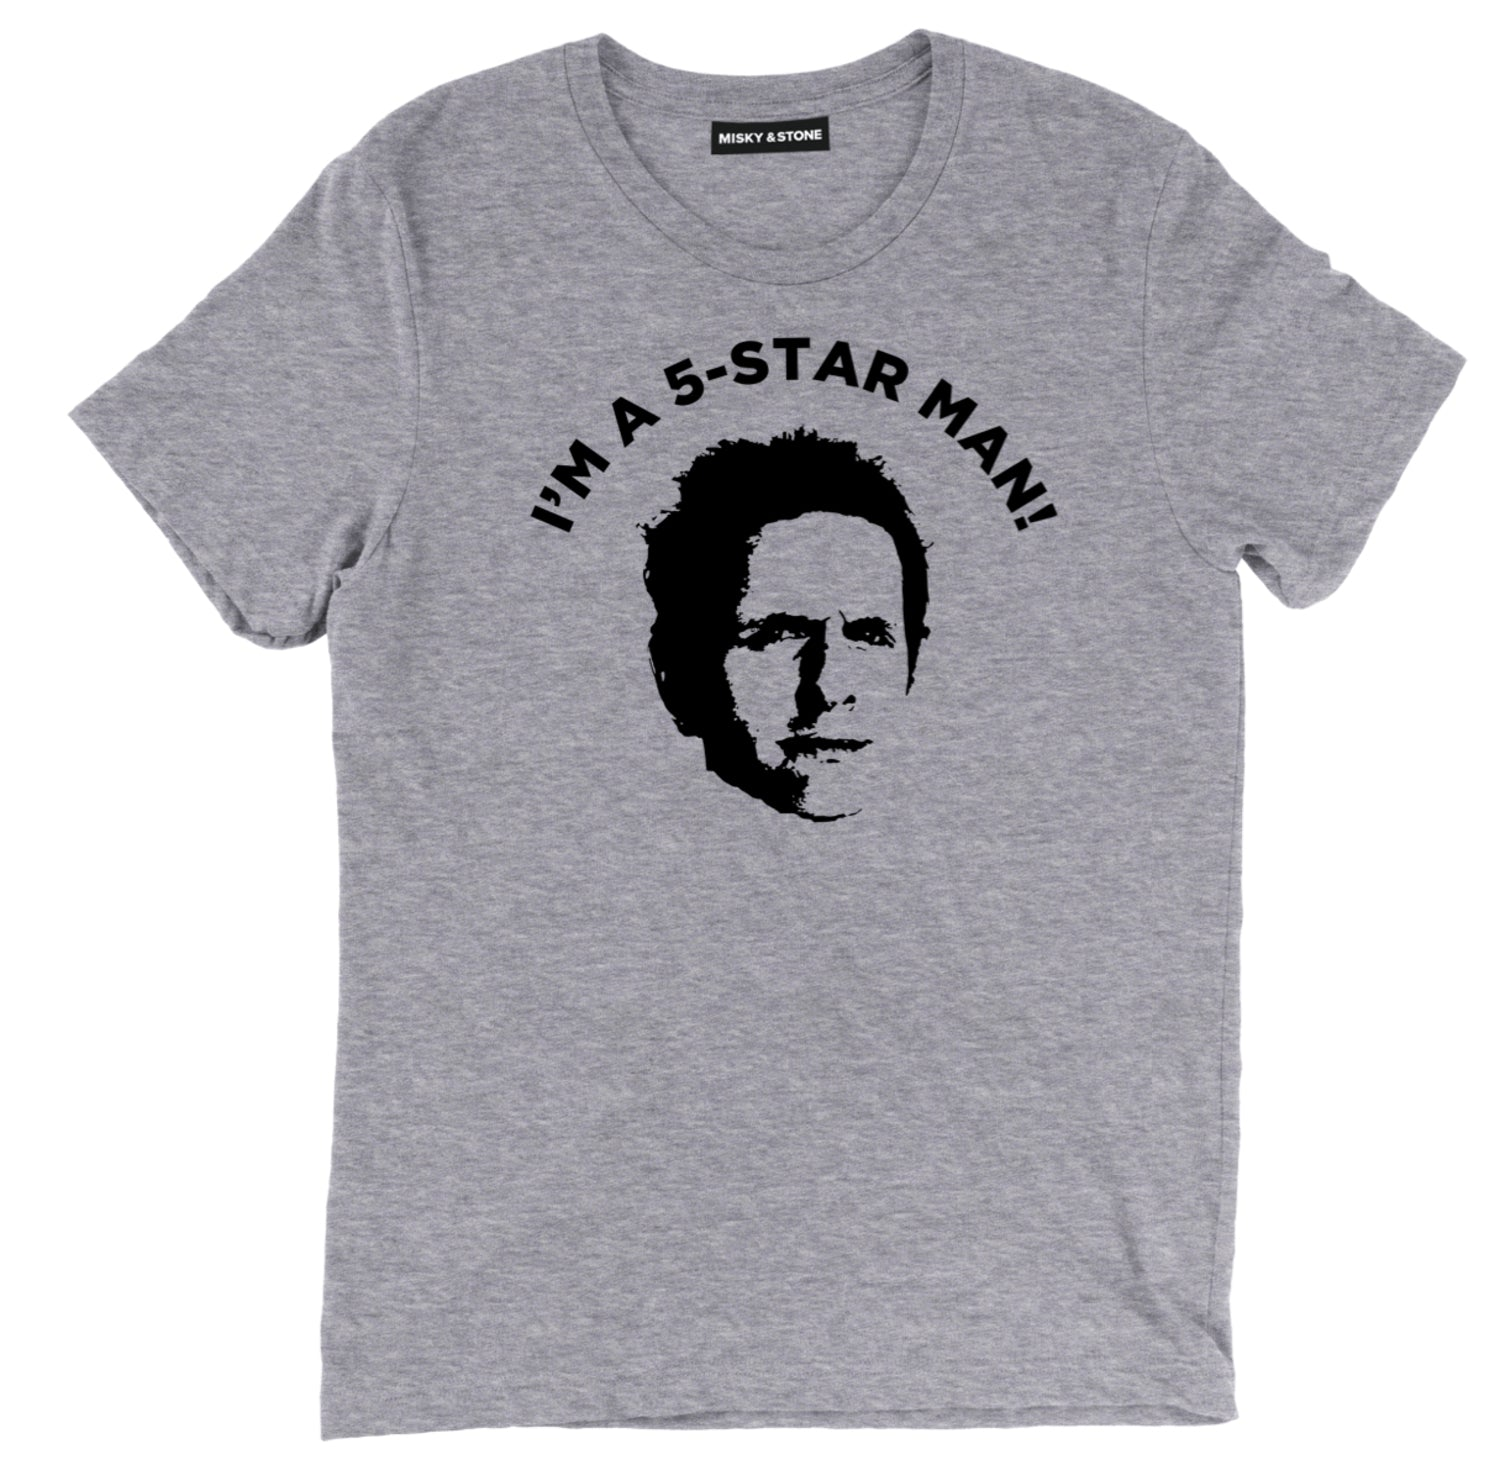 Im A Five Star Man T Shirt